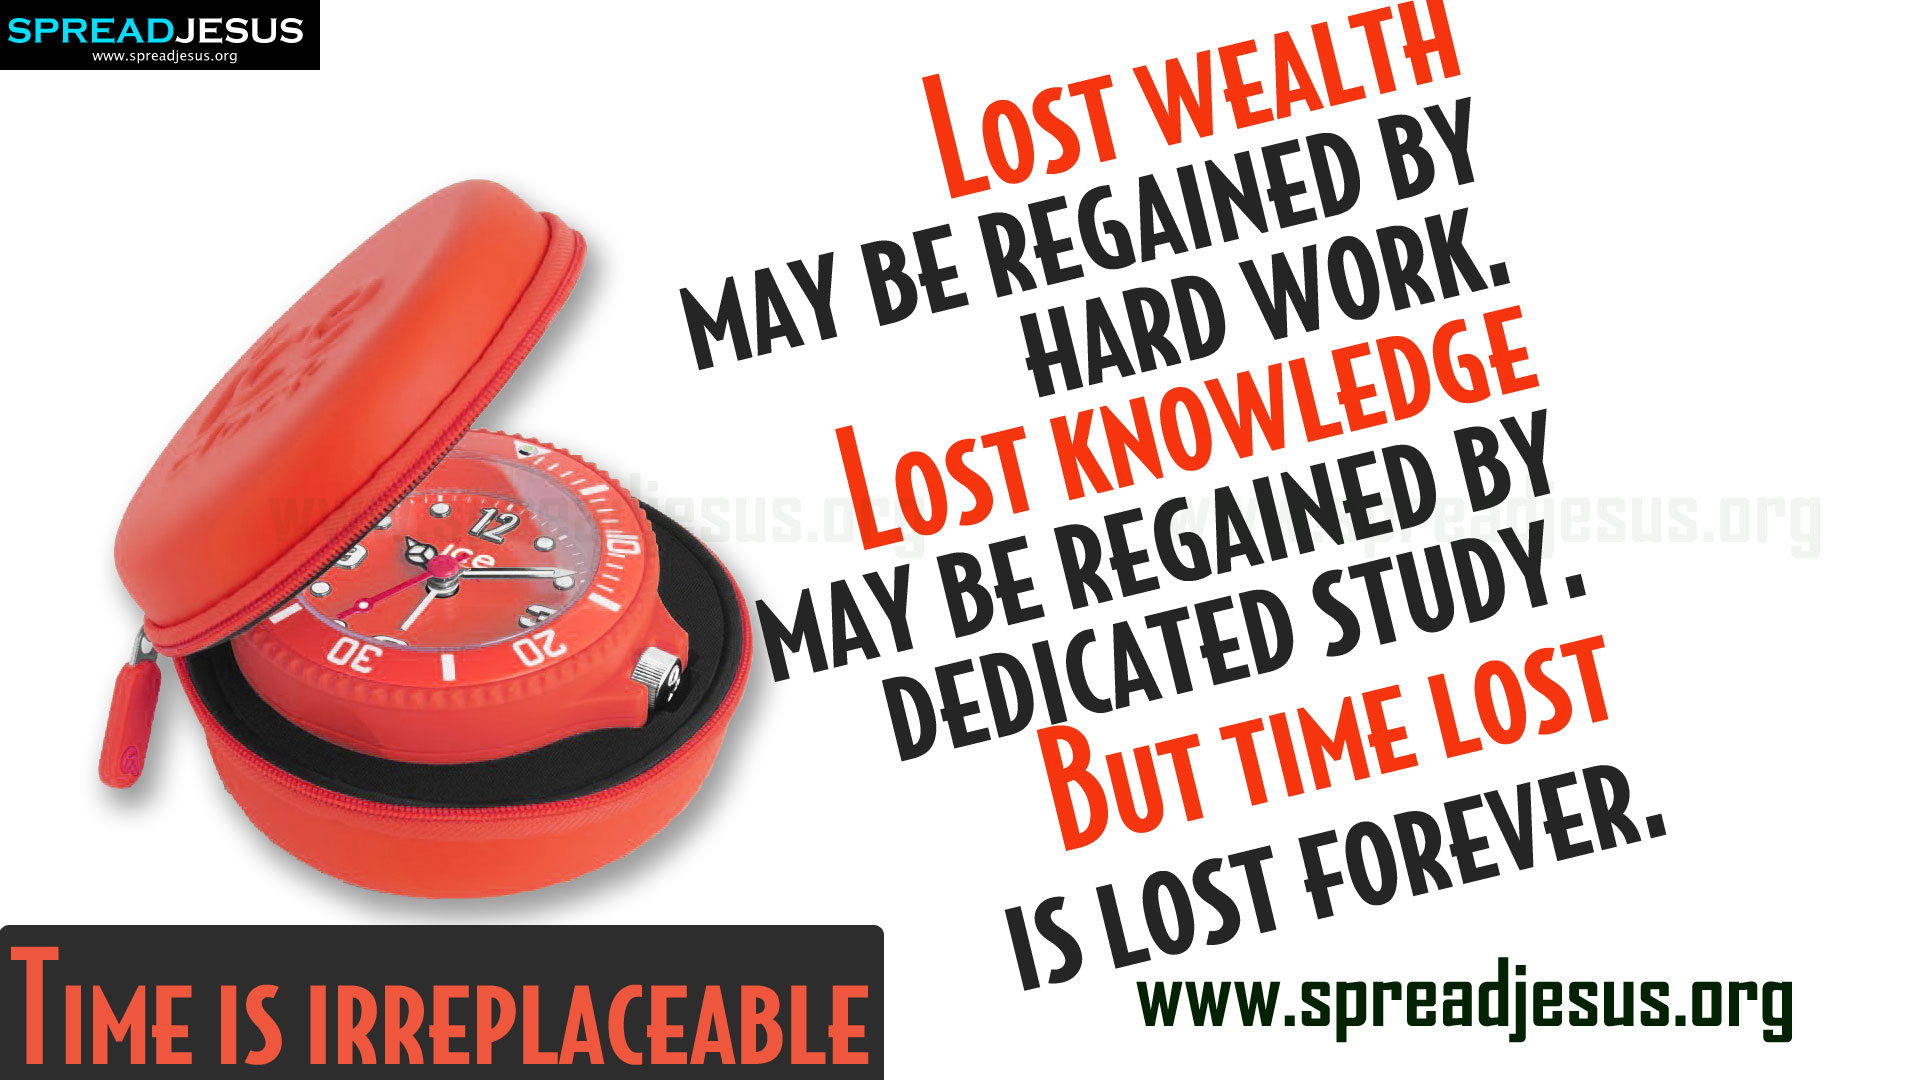 TIME MANAGEMENT QUOTES HD-WALLPAPERS FREE DOWNLOAD Time is irreplaceable - Lost wealth may be regained by hard work.